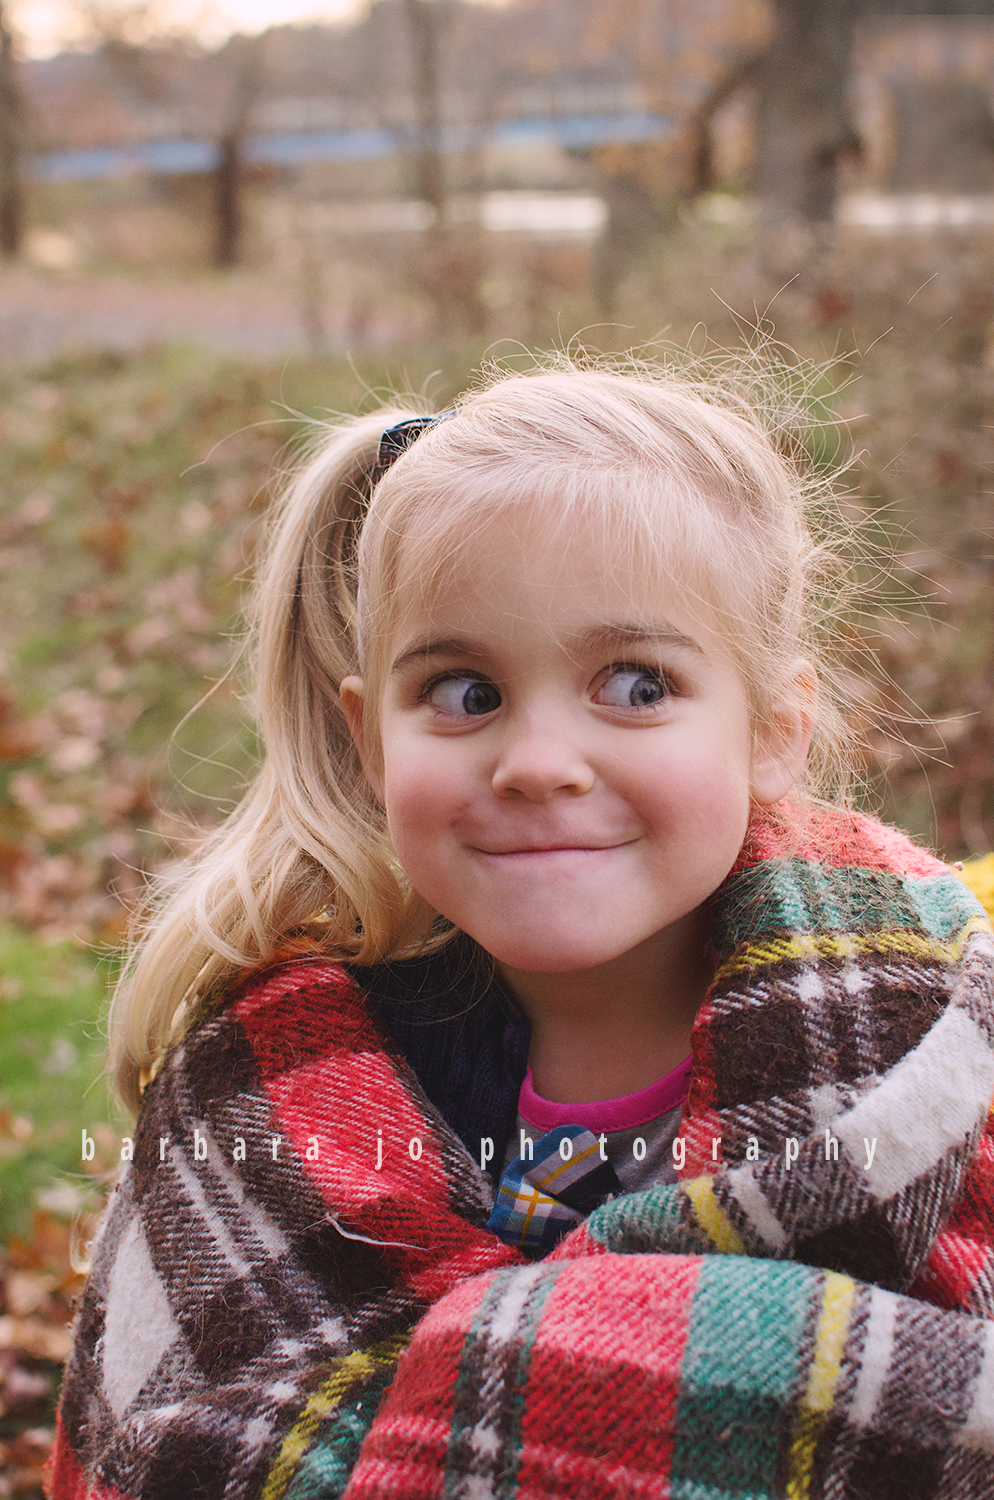 bjp-family-children-photographer-dover-oh-mini-sessions-fall-autumn-fantin14.png